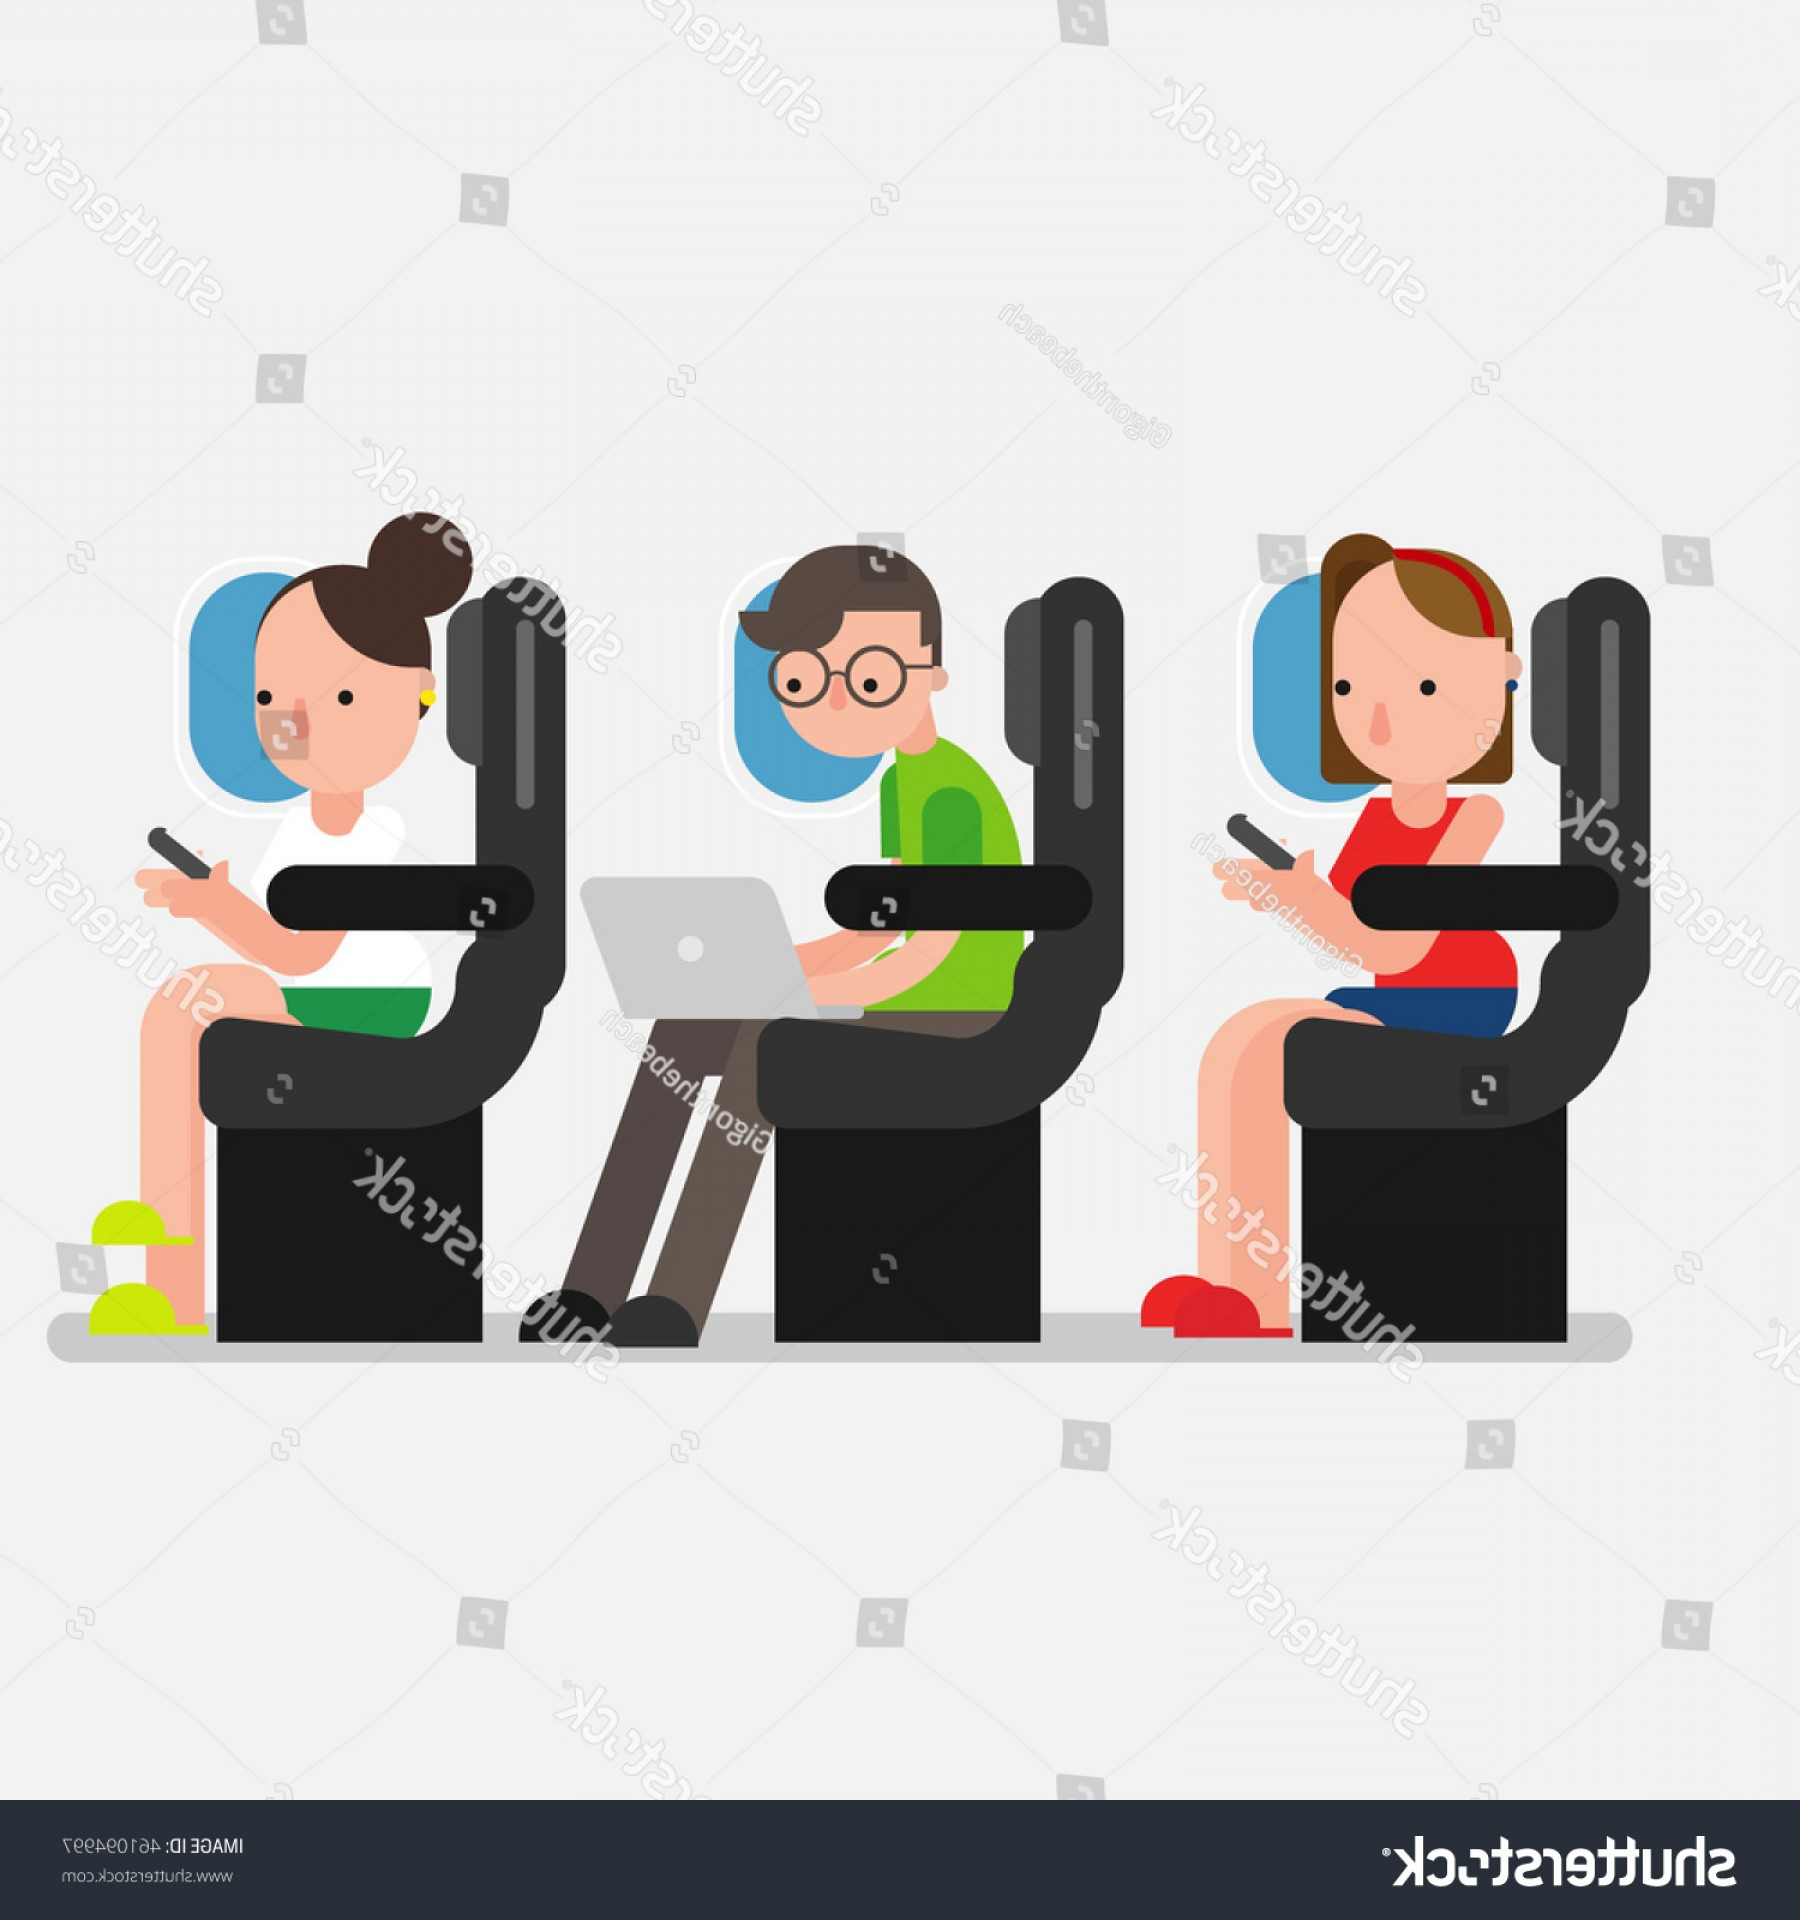 Vector Man Working In Cabin: Young Man Using Laptop Woman Smartphone